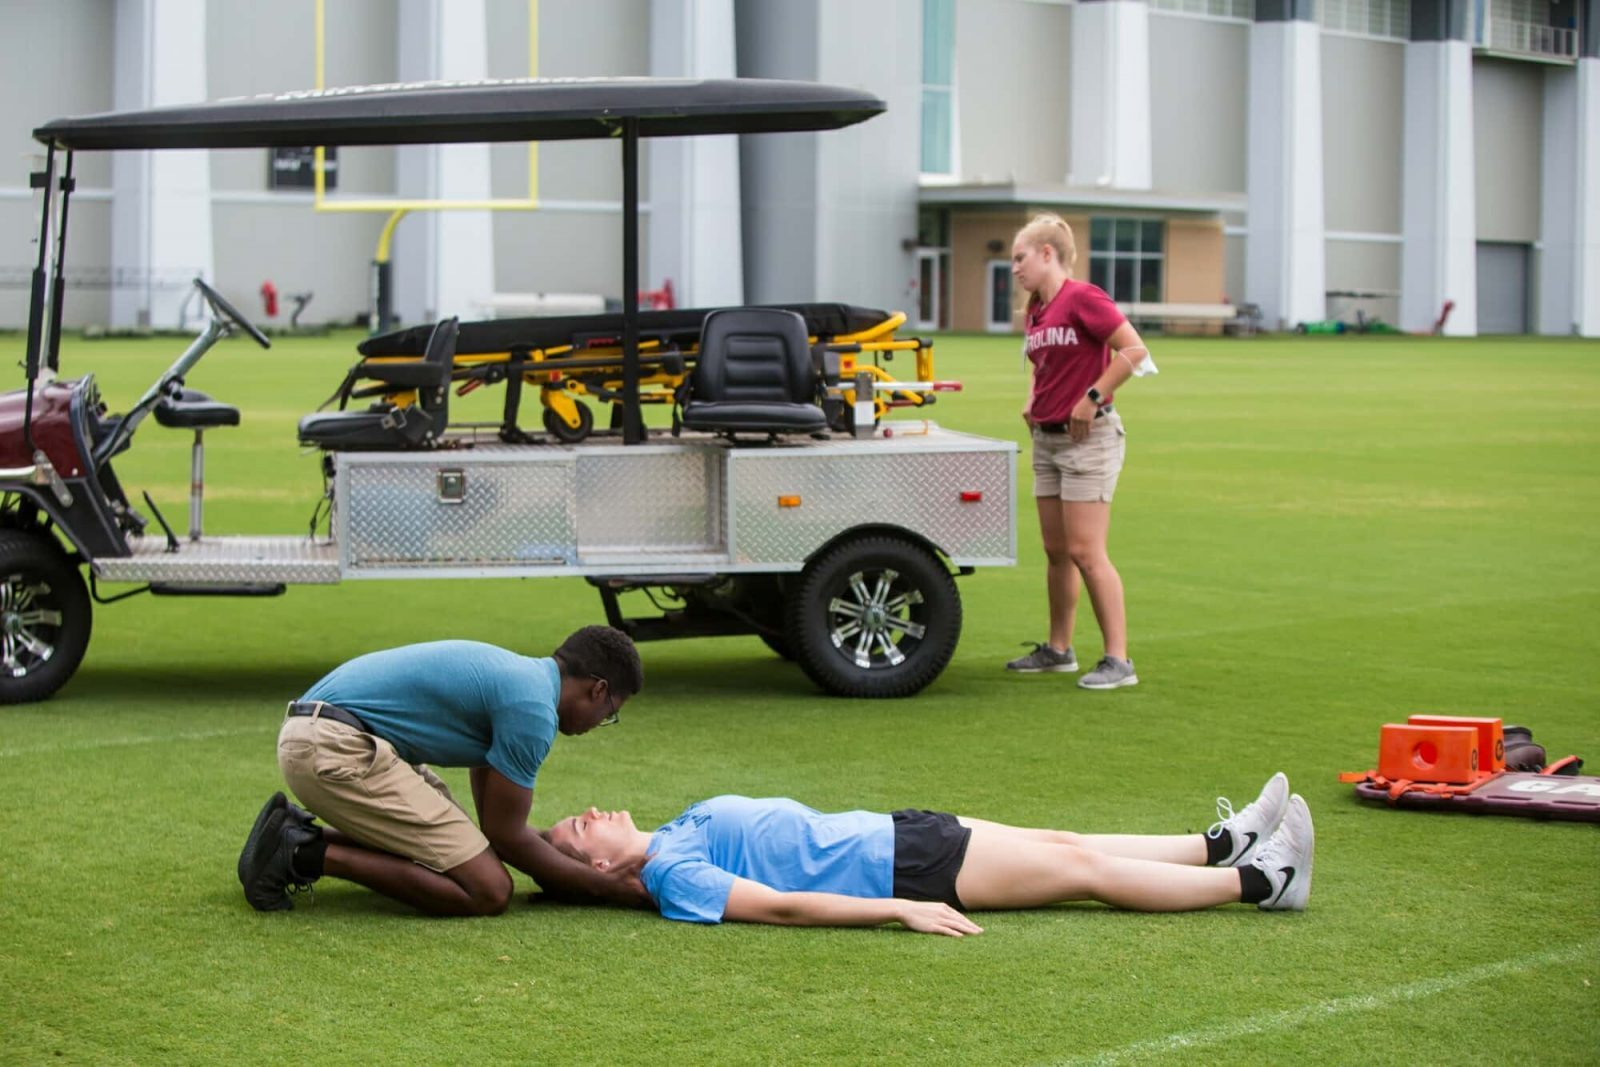 Athletic Trainer On the Field With Injured Athlete